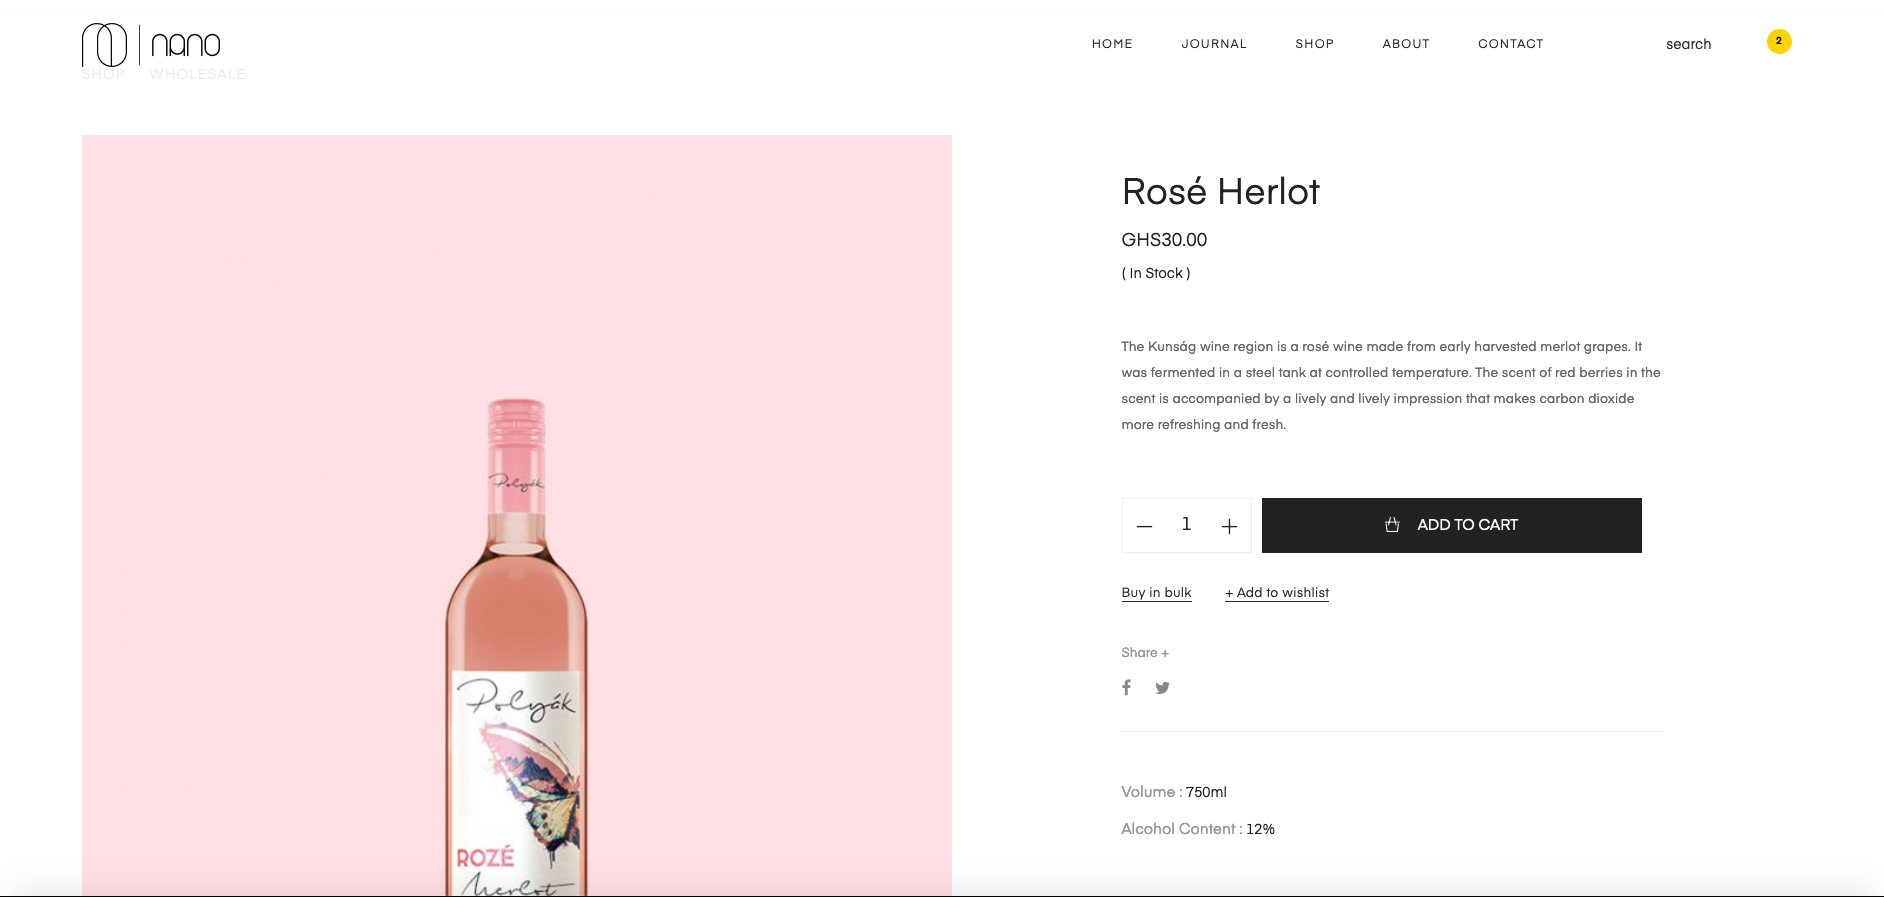 Nano wines and cards product page